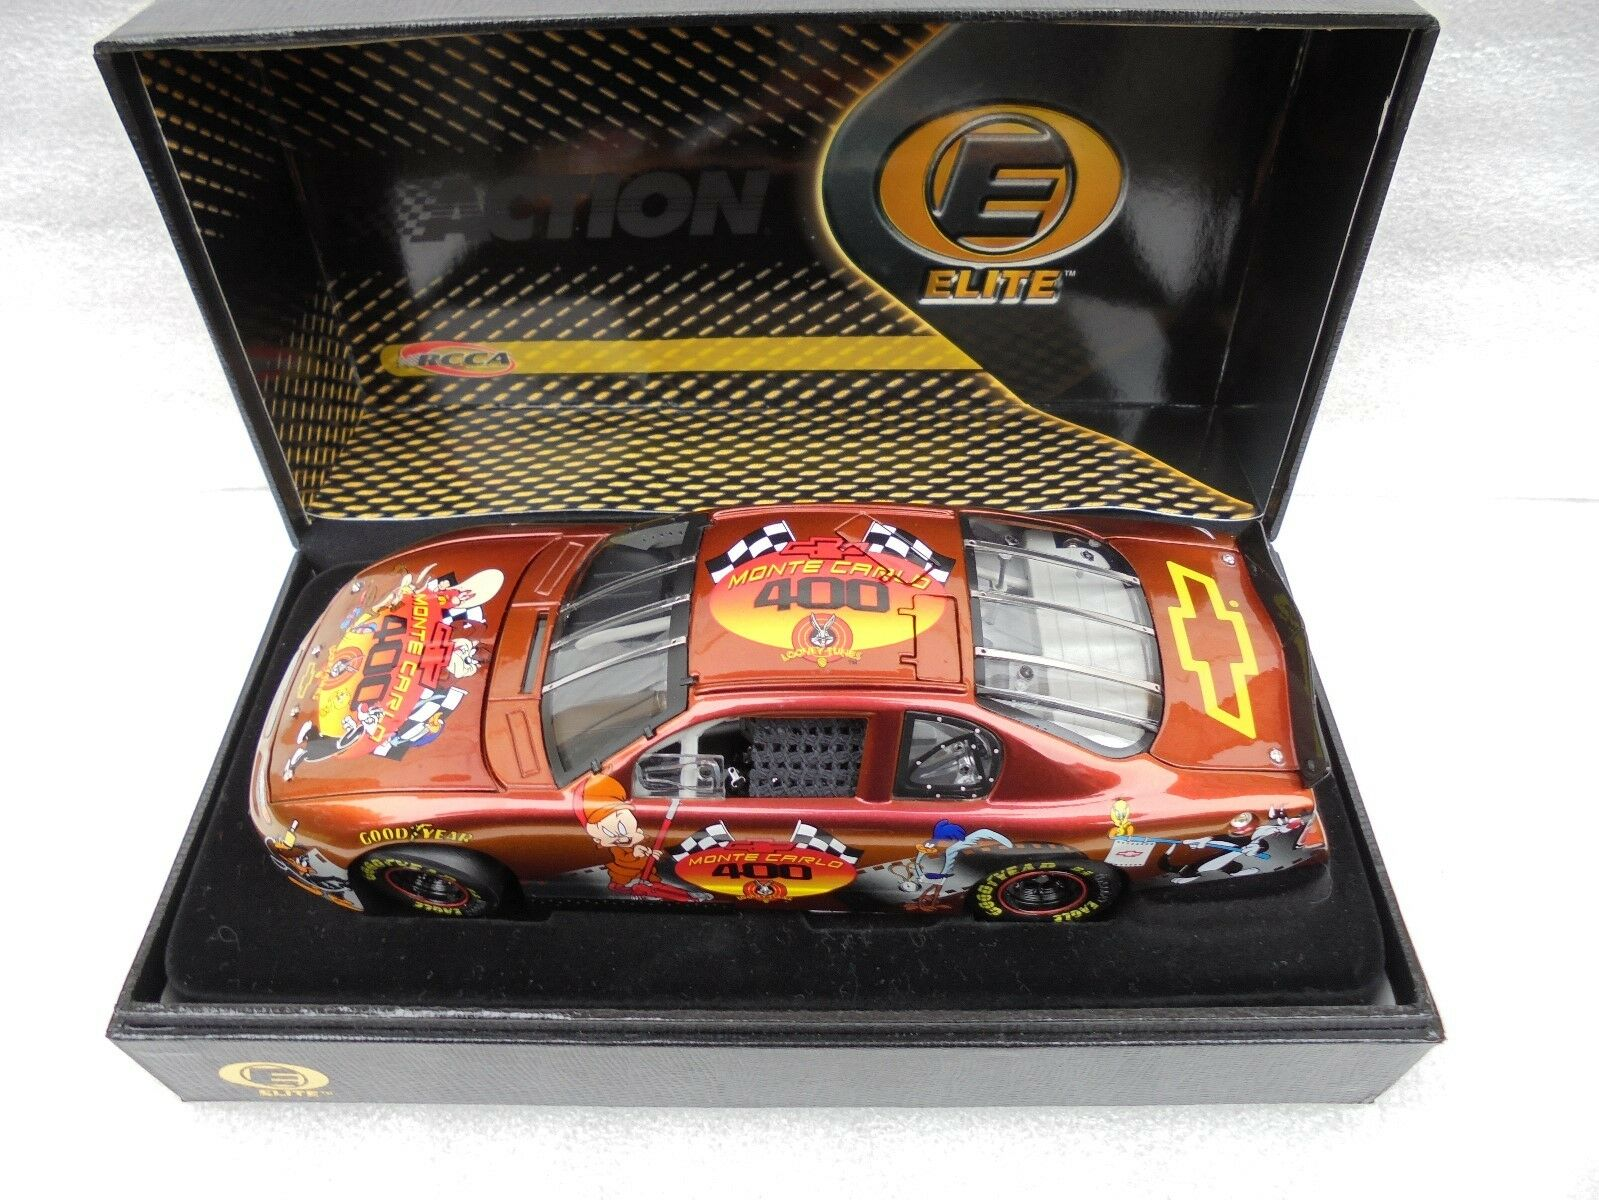 LOONEY TUNES 2001 Event Car Action RCCA ELITE 1 24th Nascar Diecast Collectible